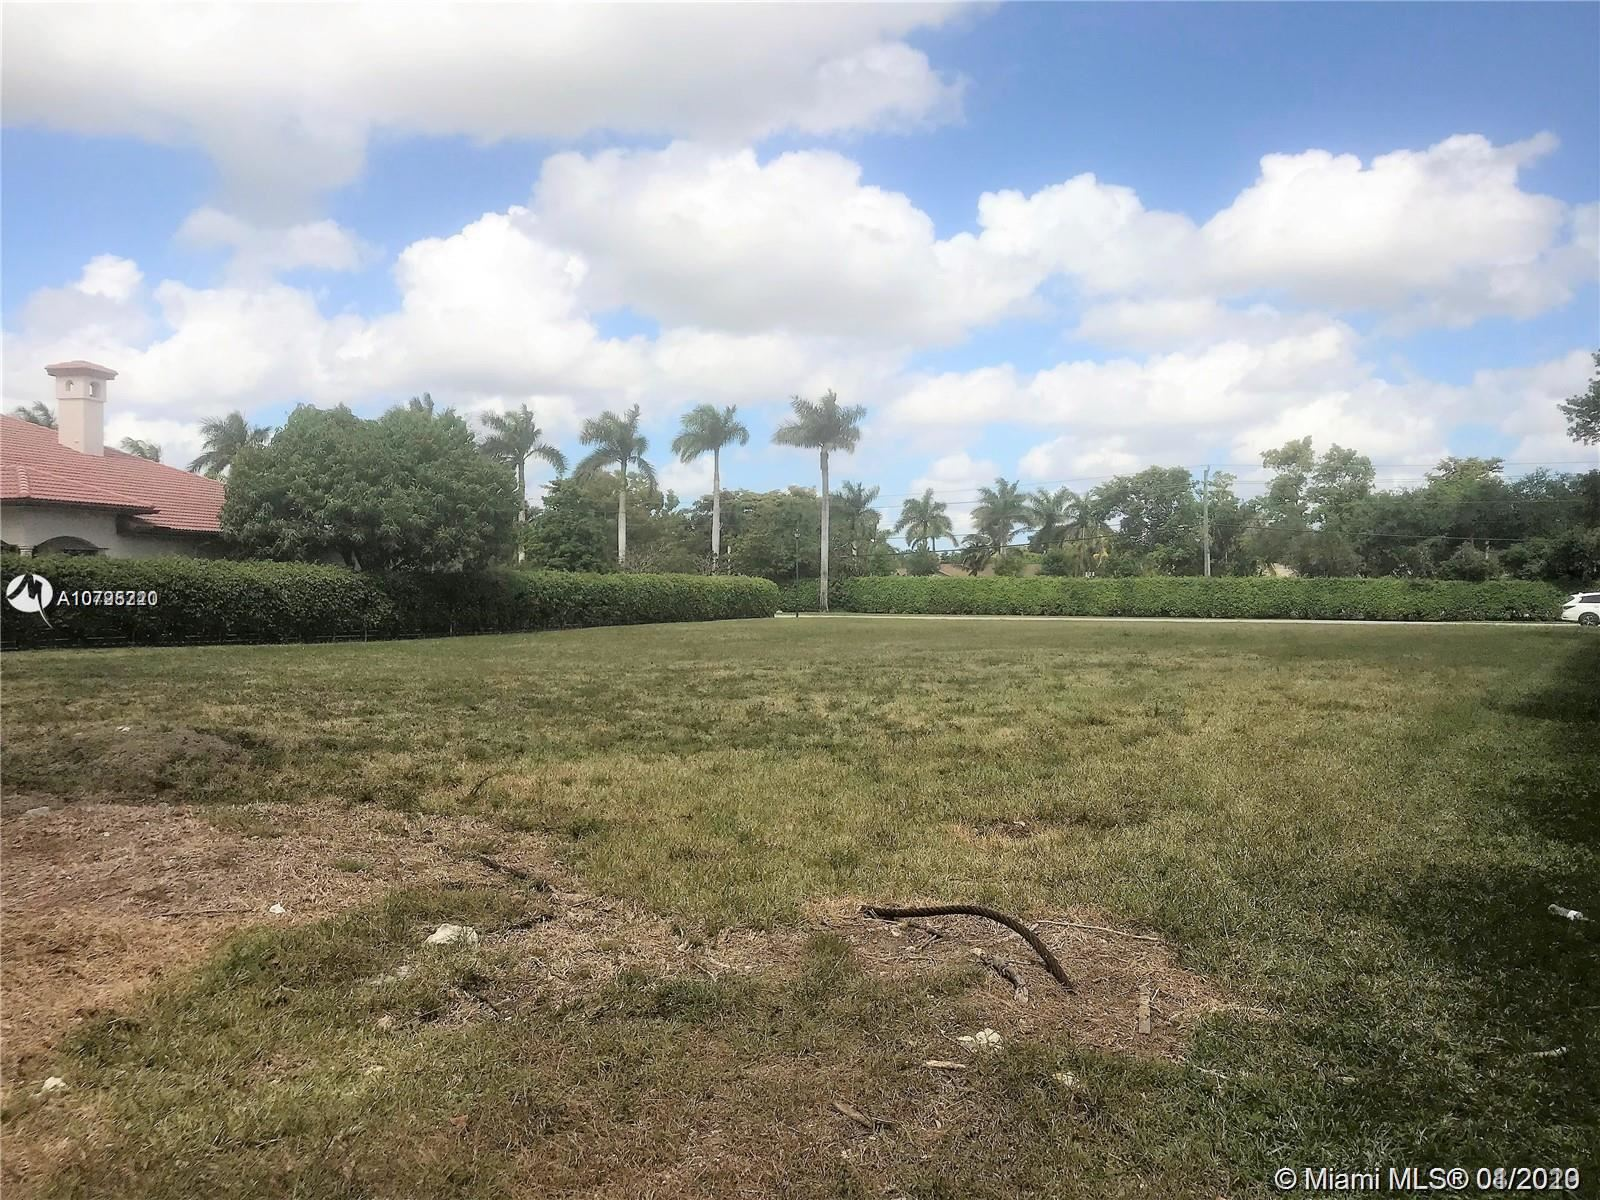 Photo 8 of Listing MLS a10795220 in 441 Ranch Rd Weston FL 33326